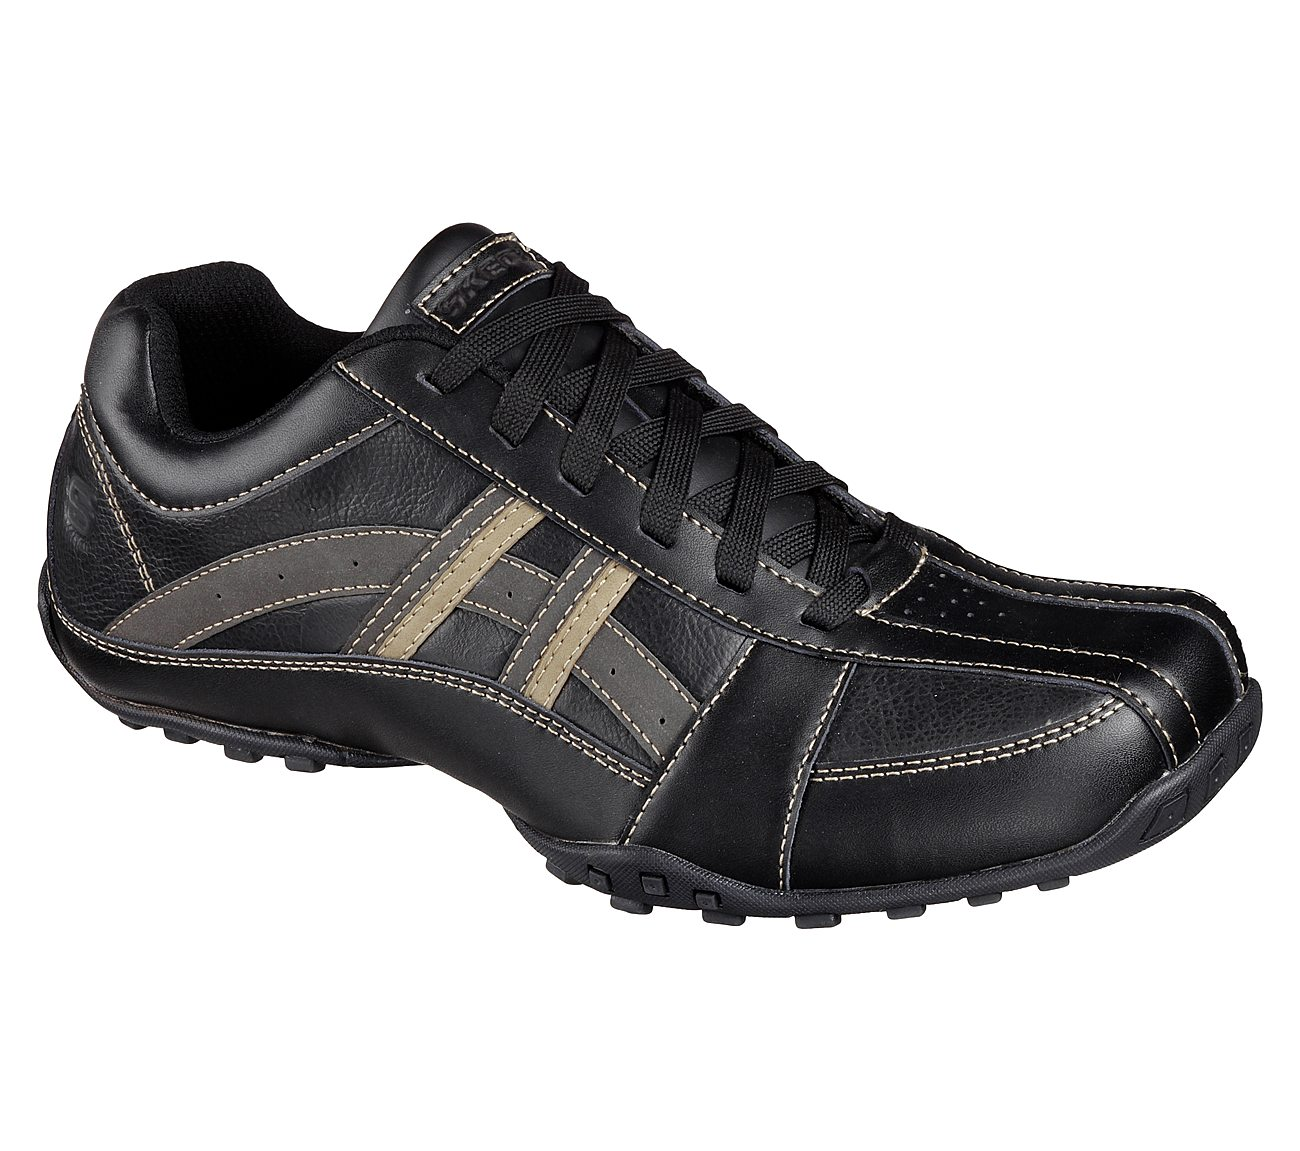 Citywalk - Malton Modern Comfort Shoes